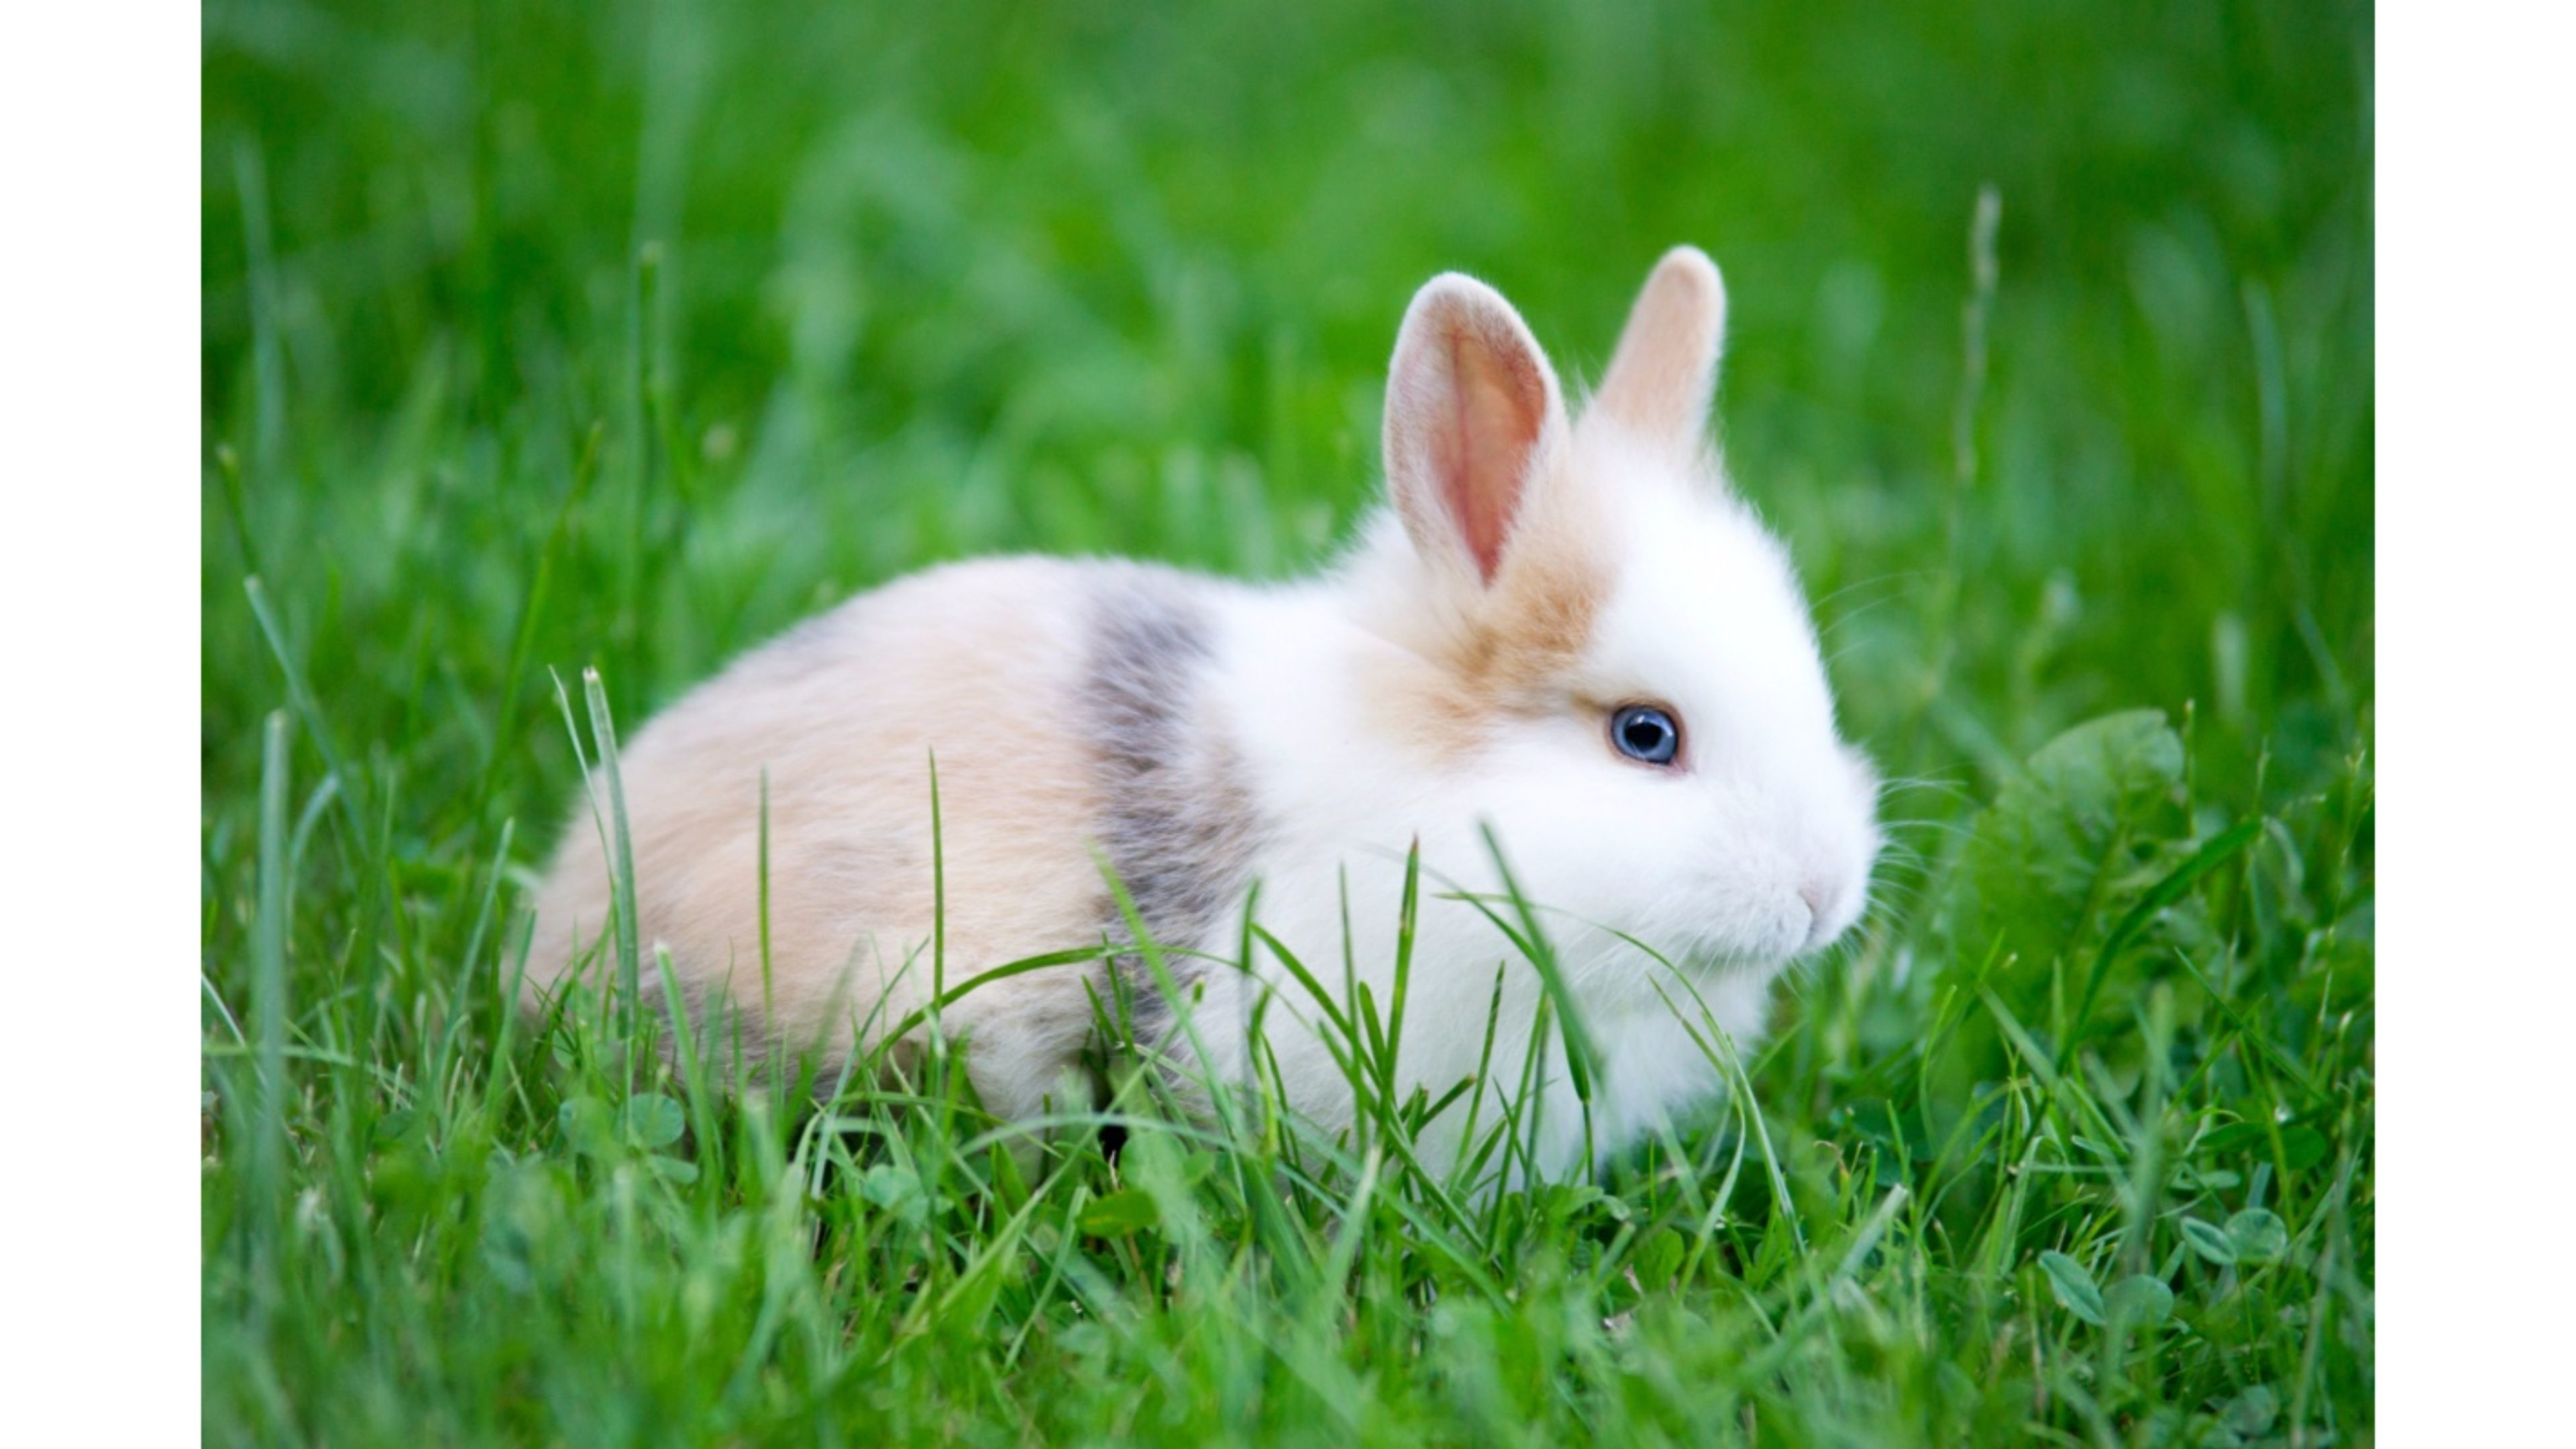 Cute Rabbits Wallpapers For Mobile Wallpapers Of Rabbits 72 Images